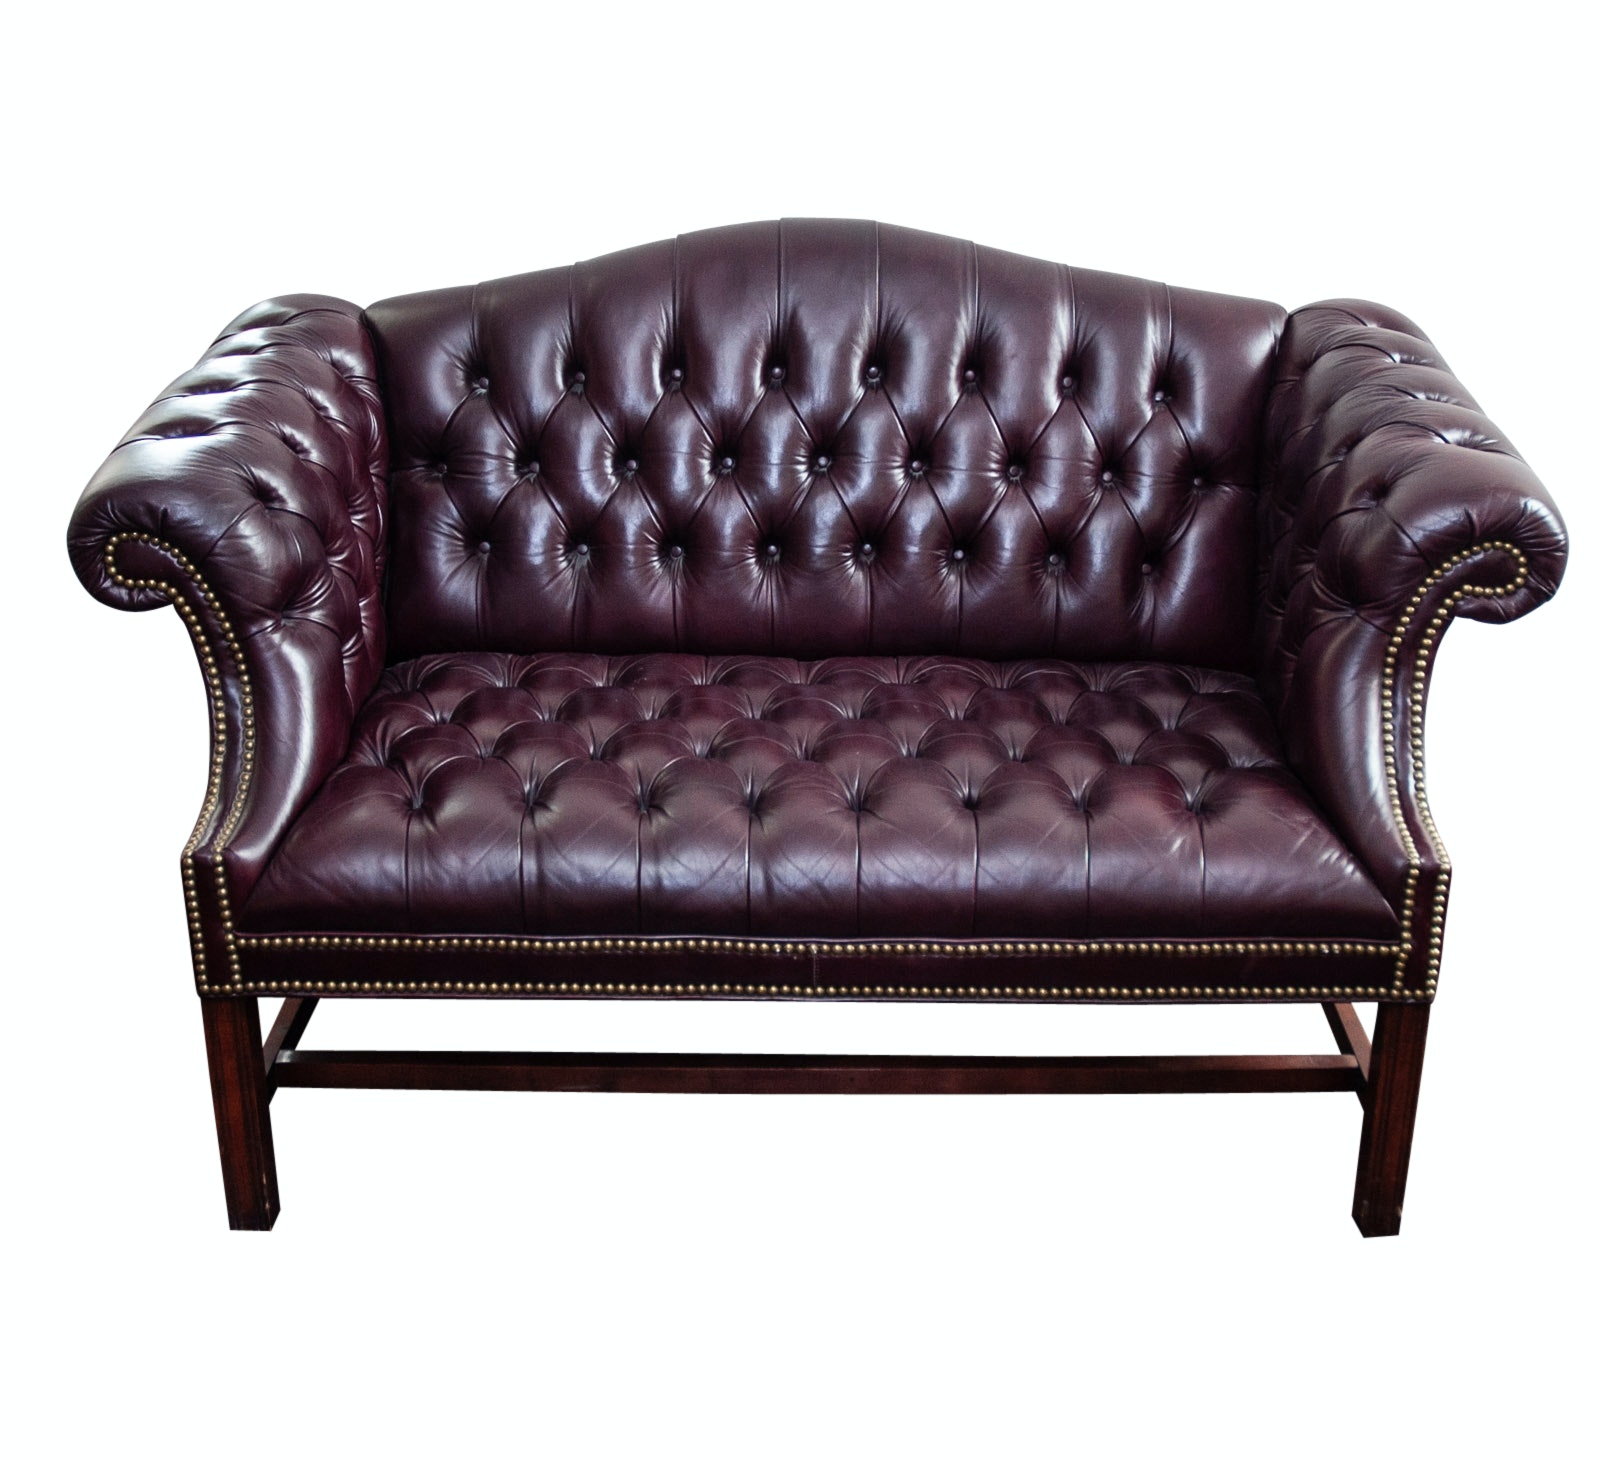 Contemporary Tufted Leather Settee